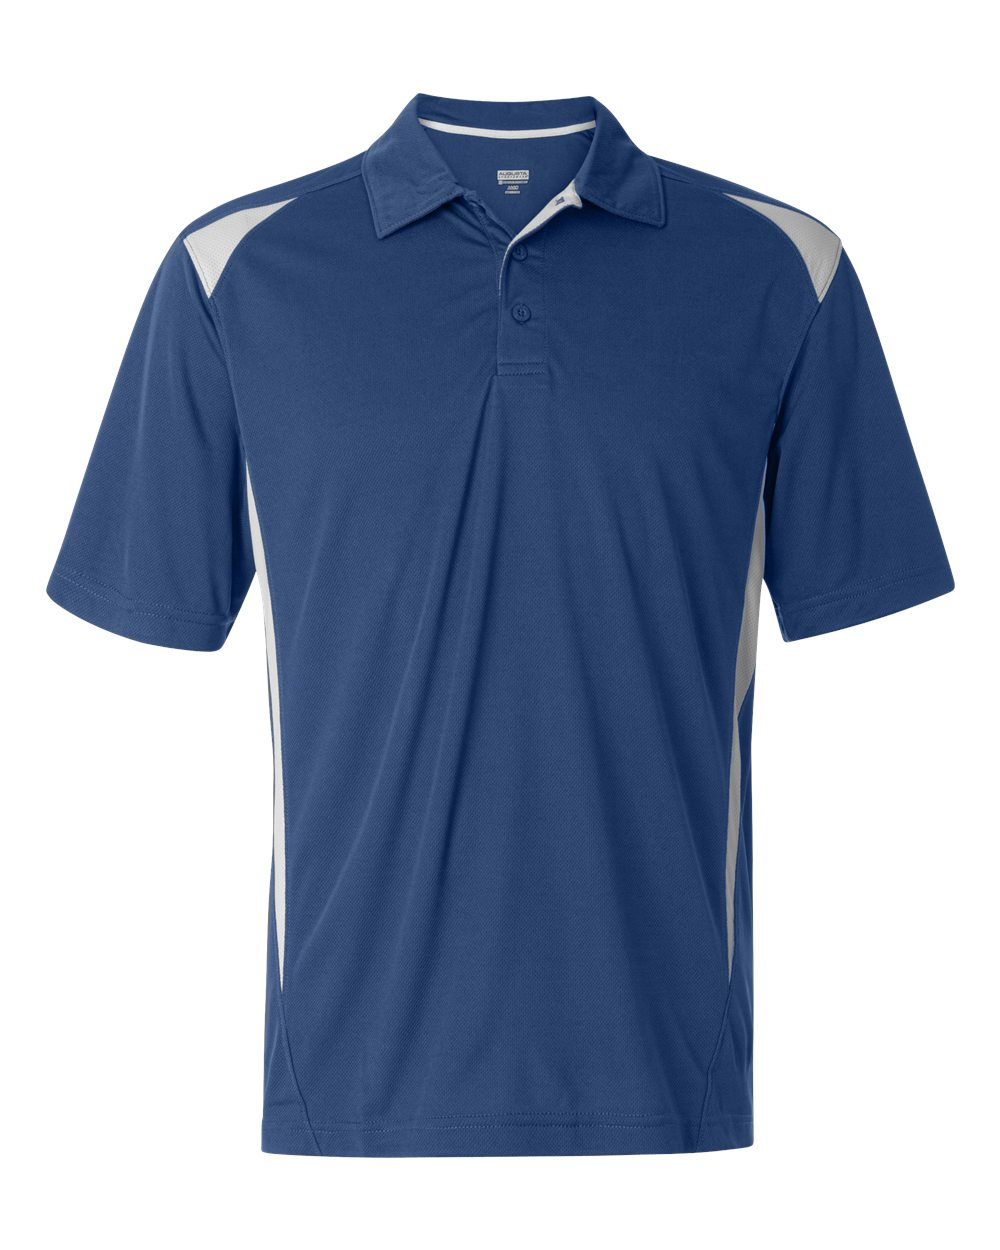 Augusta-Mens-Sportswear-Two-Tone-Premier-Sport-Shirt-5012-up-to-3XL thumbnail 15